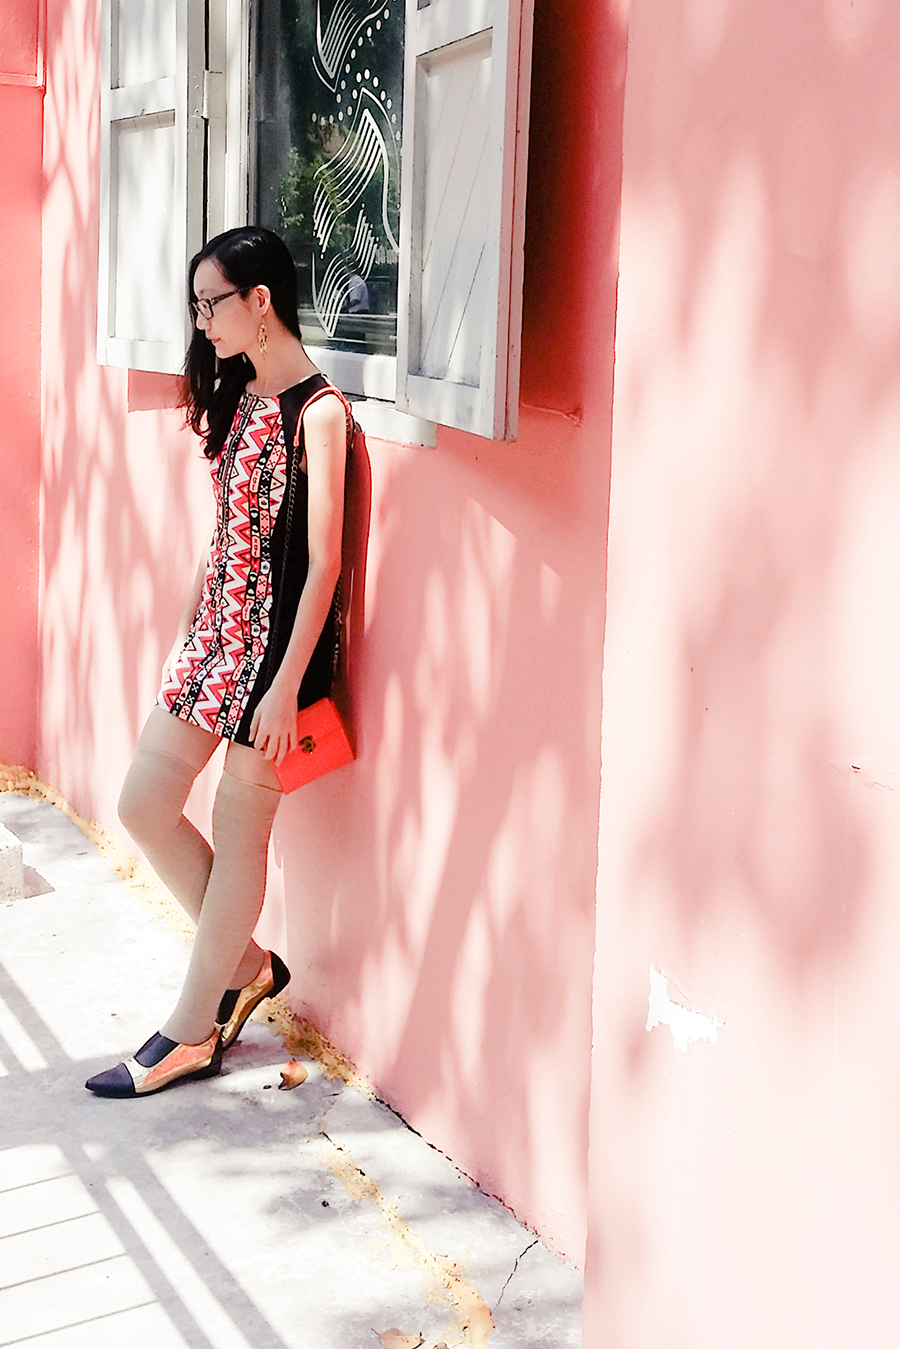 Golden Shoes outfit: H&M red and black bodycon dress, beige thigh high socks, Something Borrowed black and gold dual toned pointed flats via Zalora, Steve Madden mini orange sling bag.